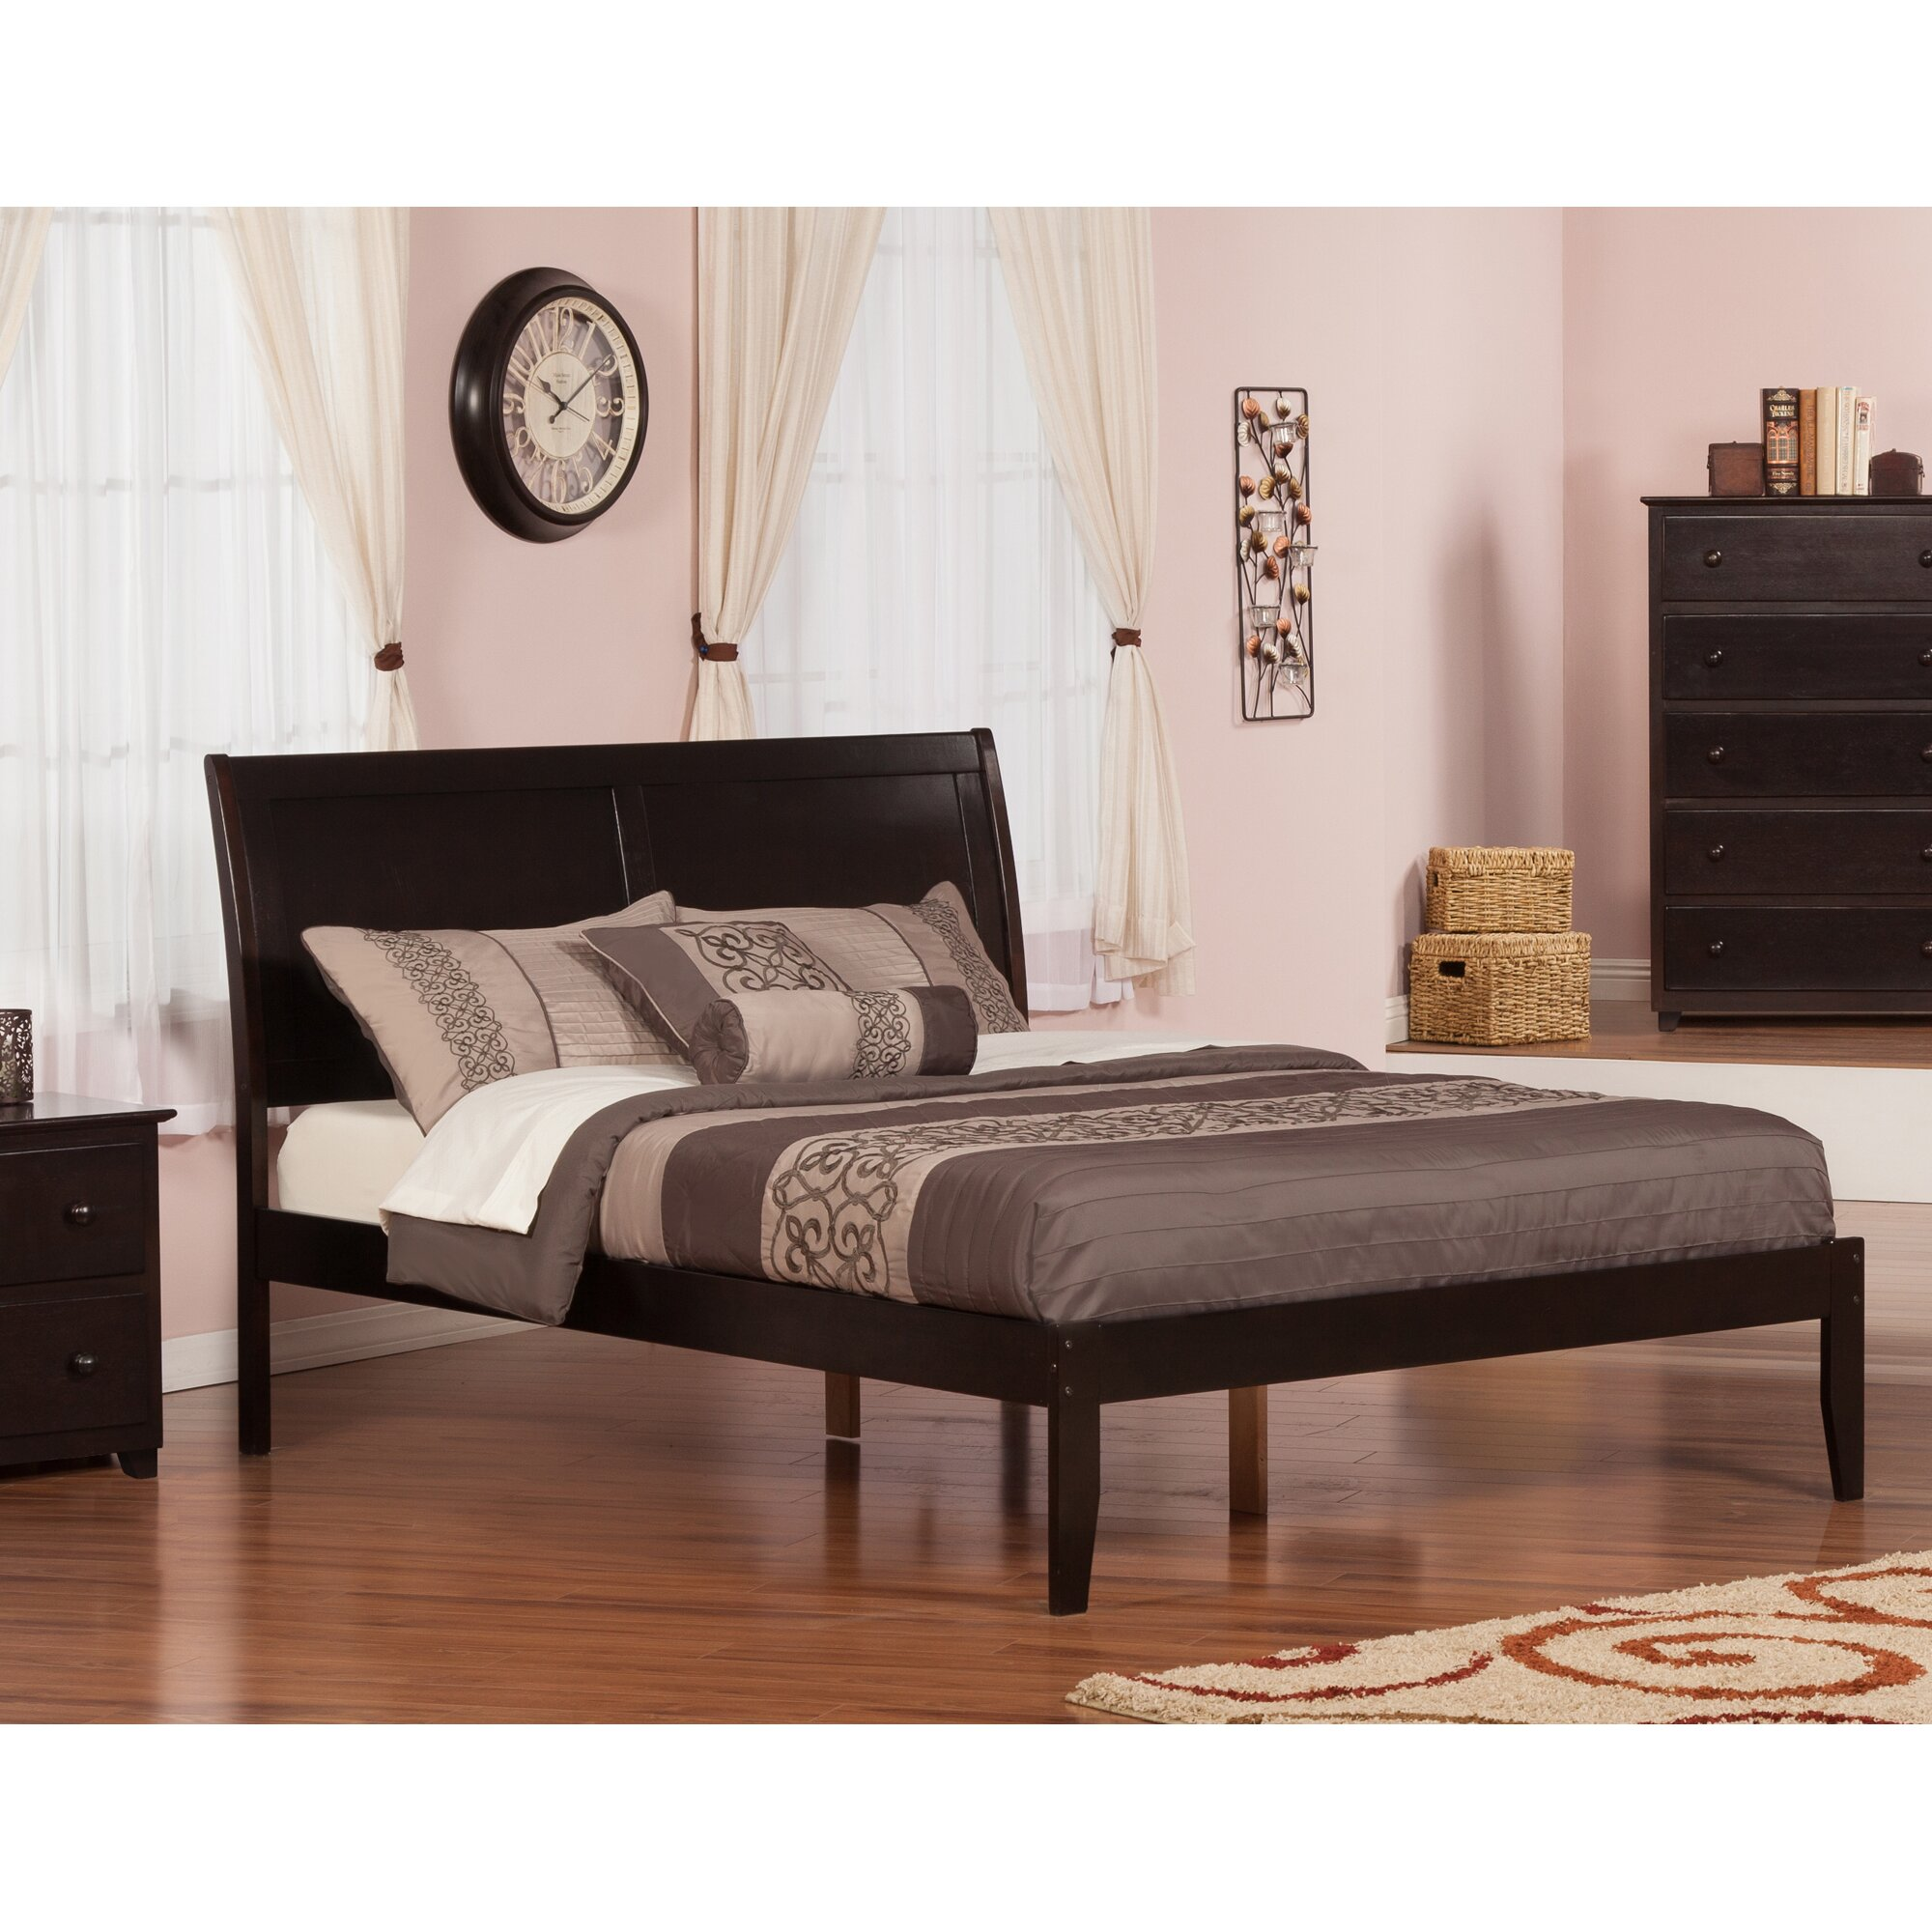 Atlantic Furniture Portland Bed & Reviews